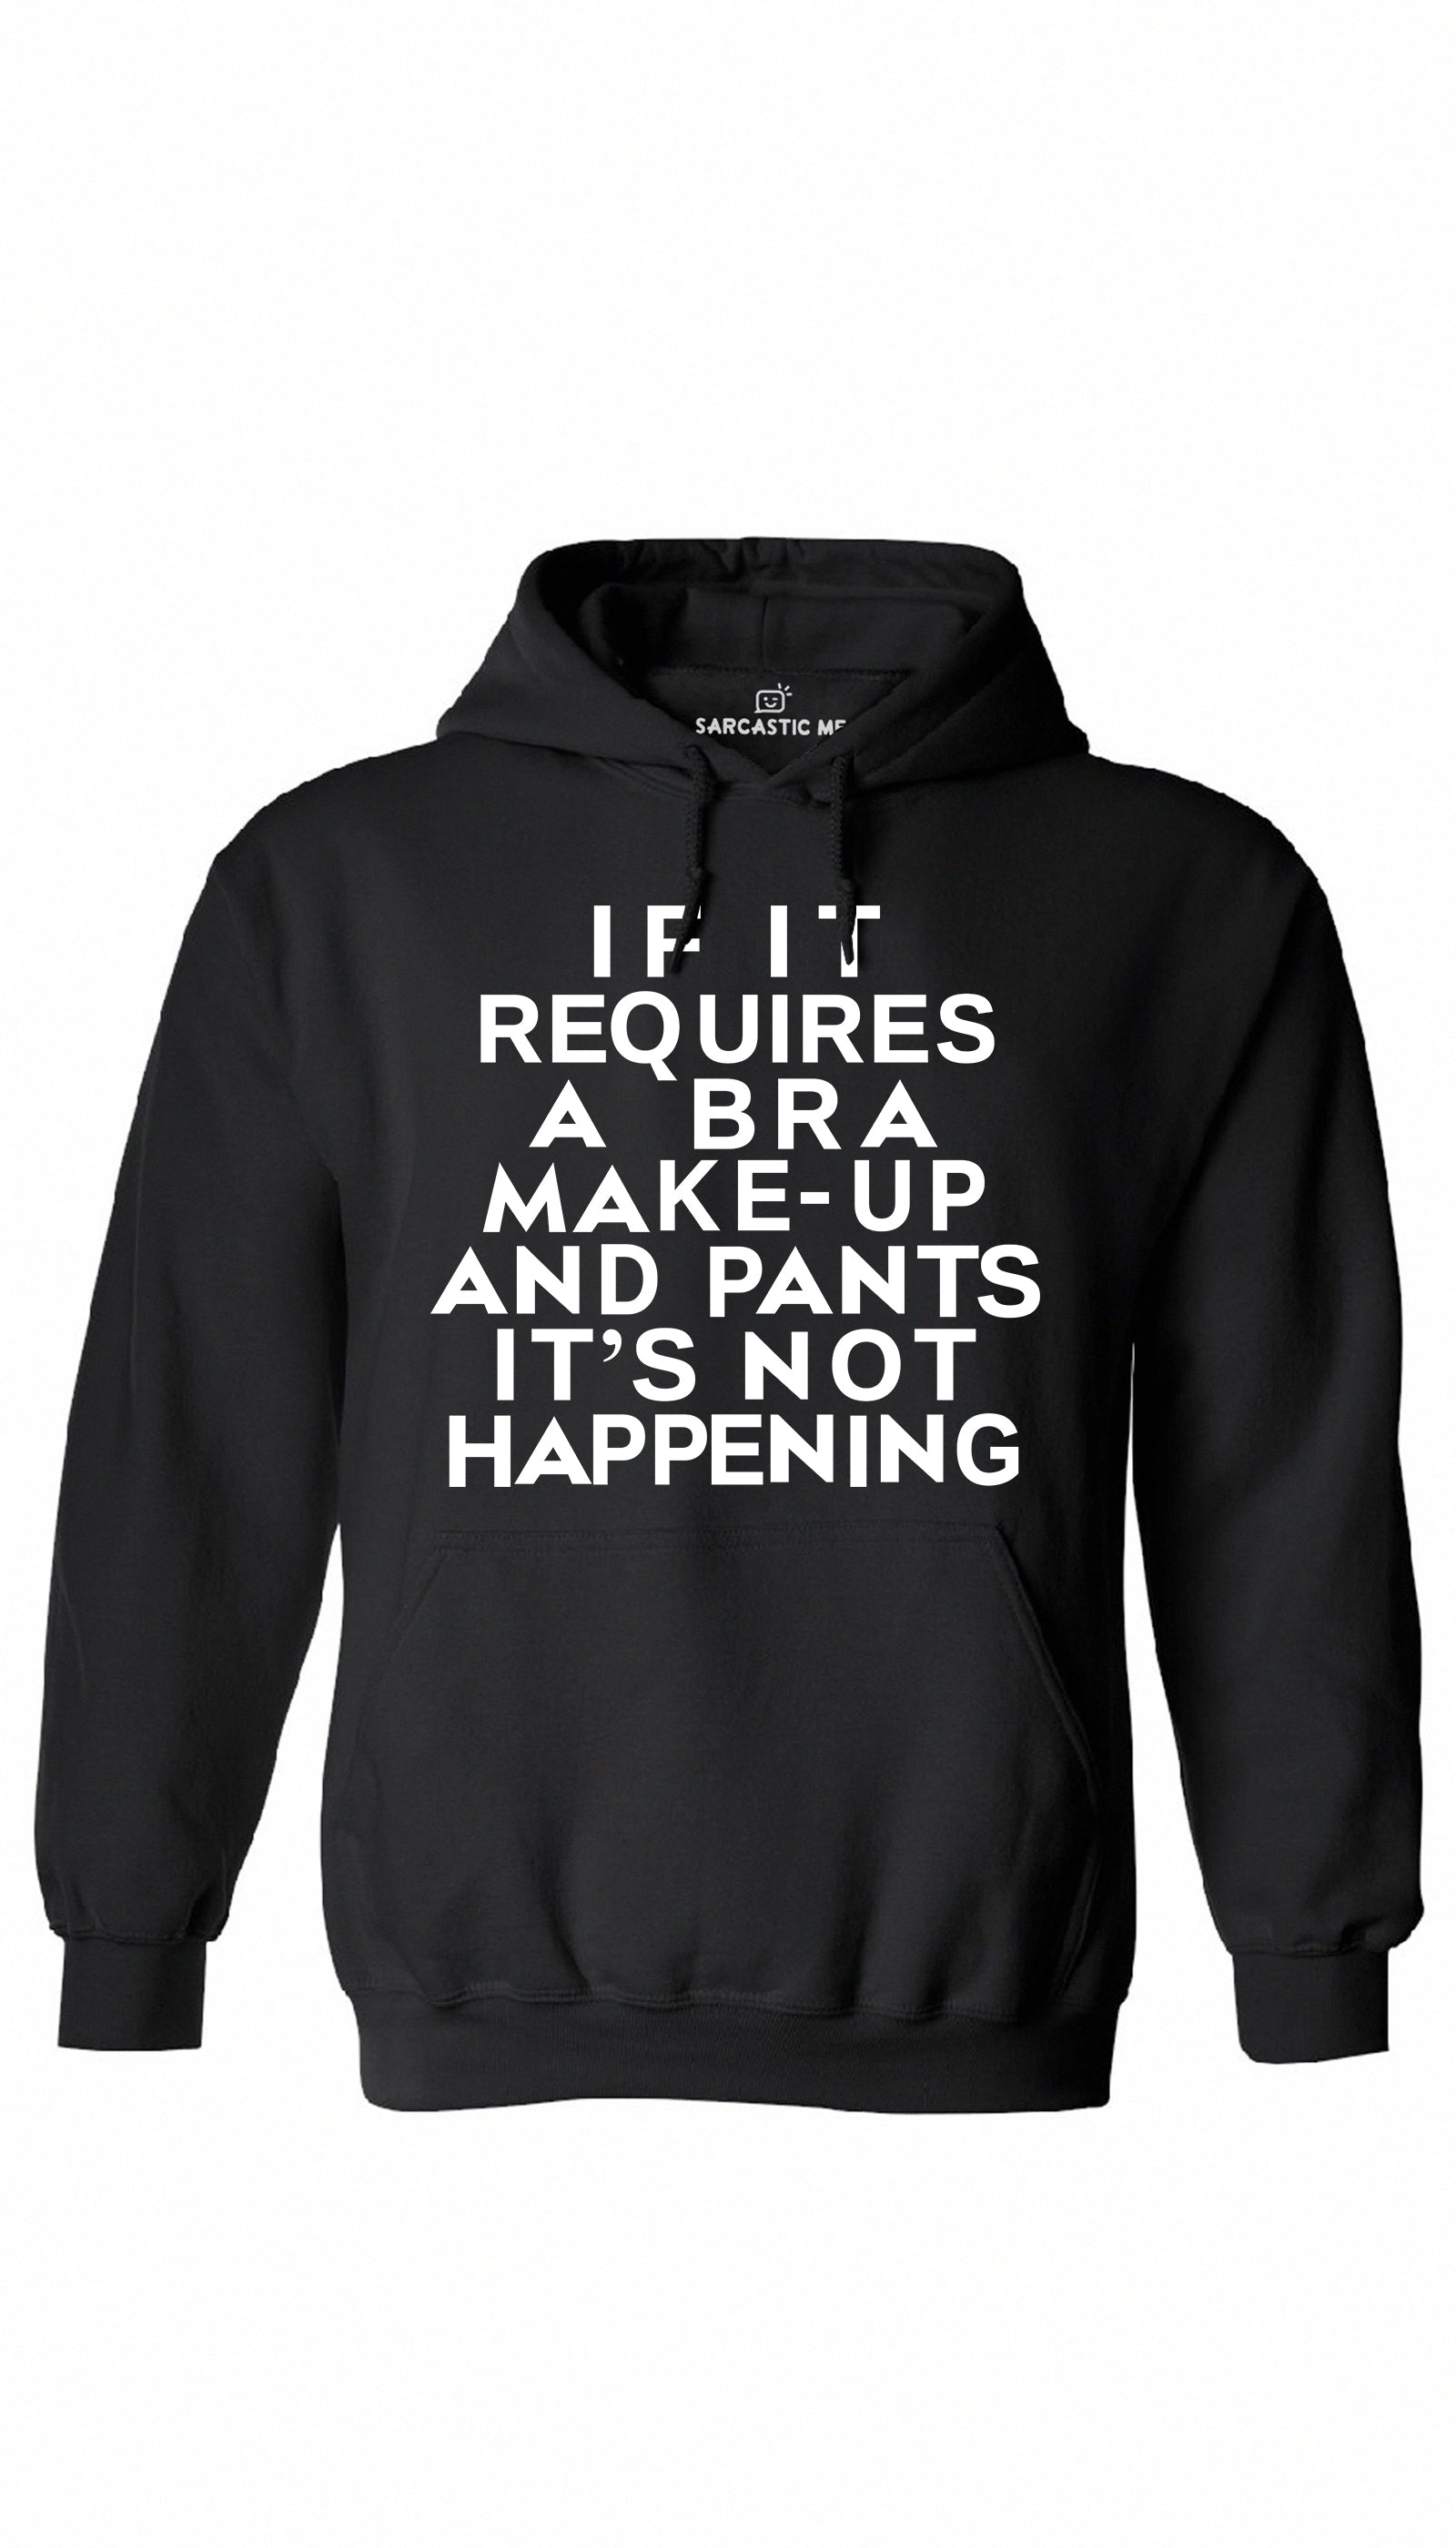 If It Requires A Bra Make-Up Pants Not Happening Black Hoodie | Sarcastic ME